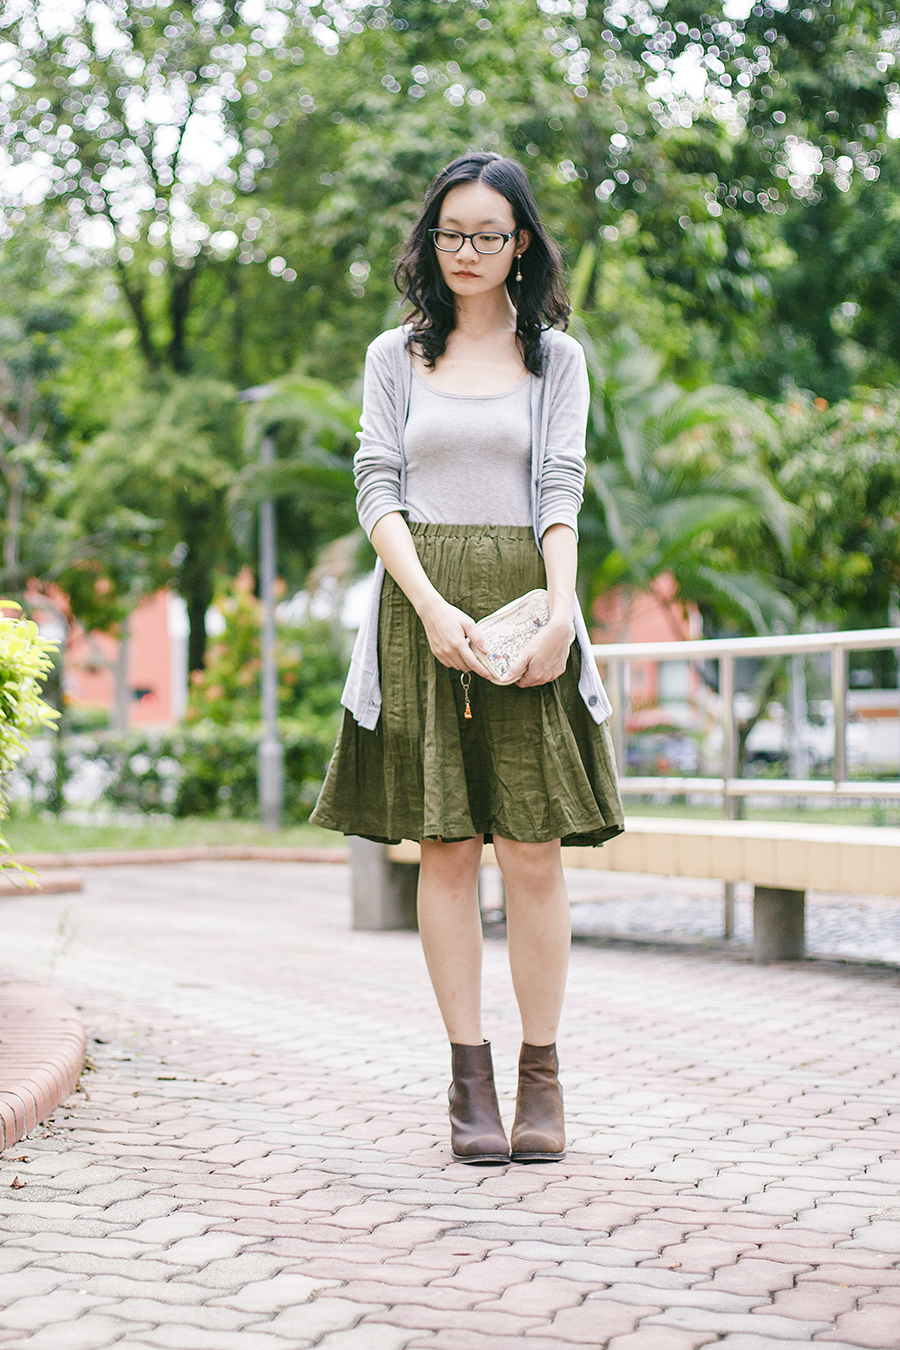 Outfit: EMart grey bratop, Bugis Street green skirt, Gap black frame glasses, Jeffrey Campbell Cash brown heel boots via Chictopia Shop, Happy Memorial Sky embroidered pouch from Takashimaya.